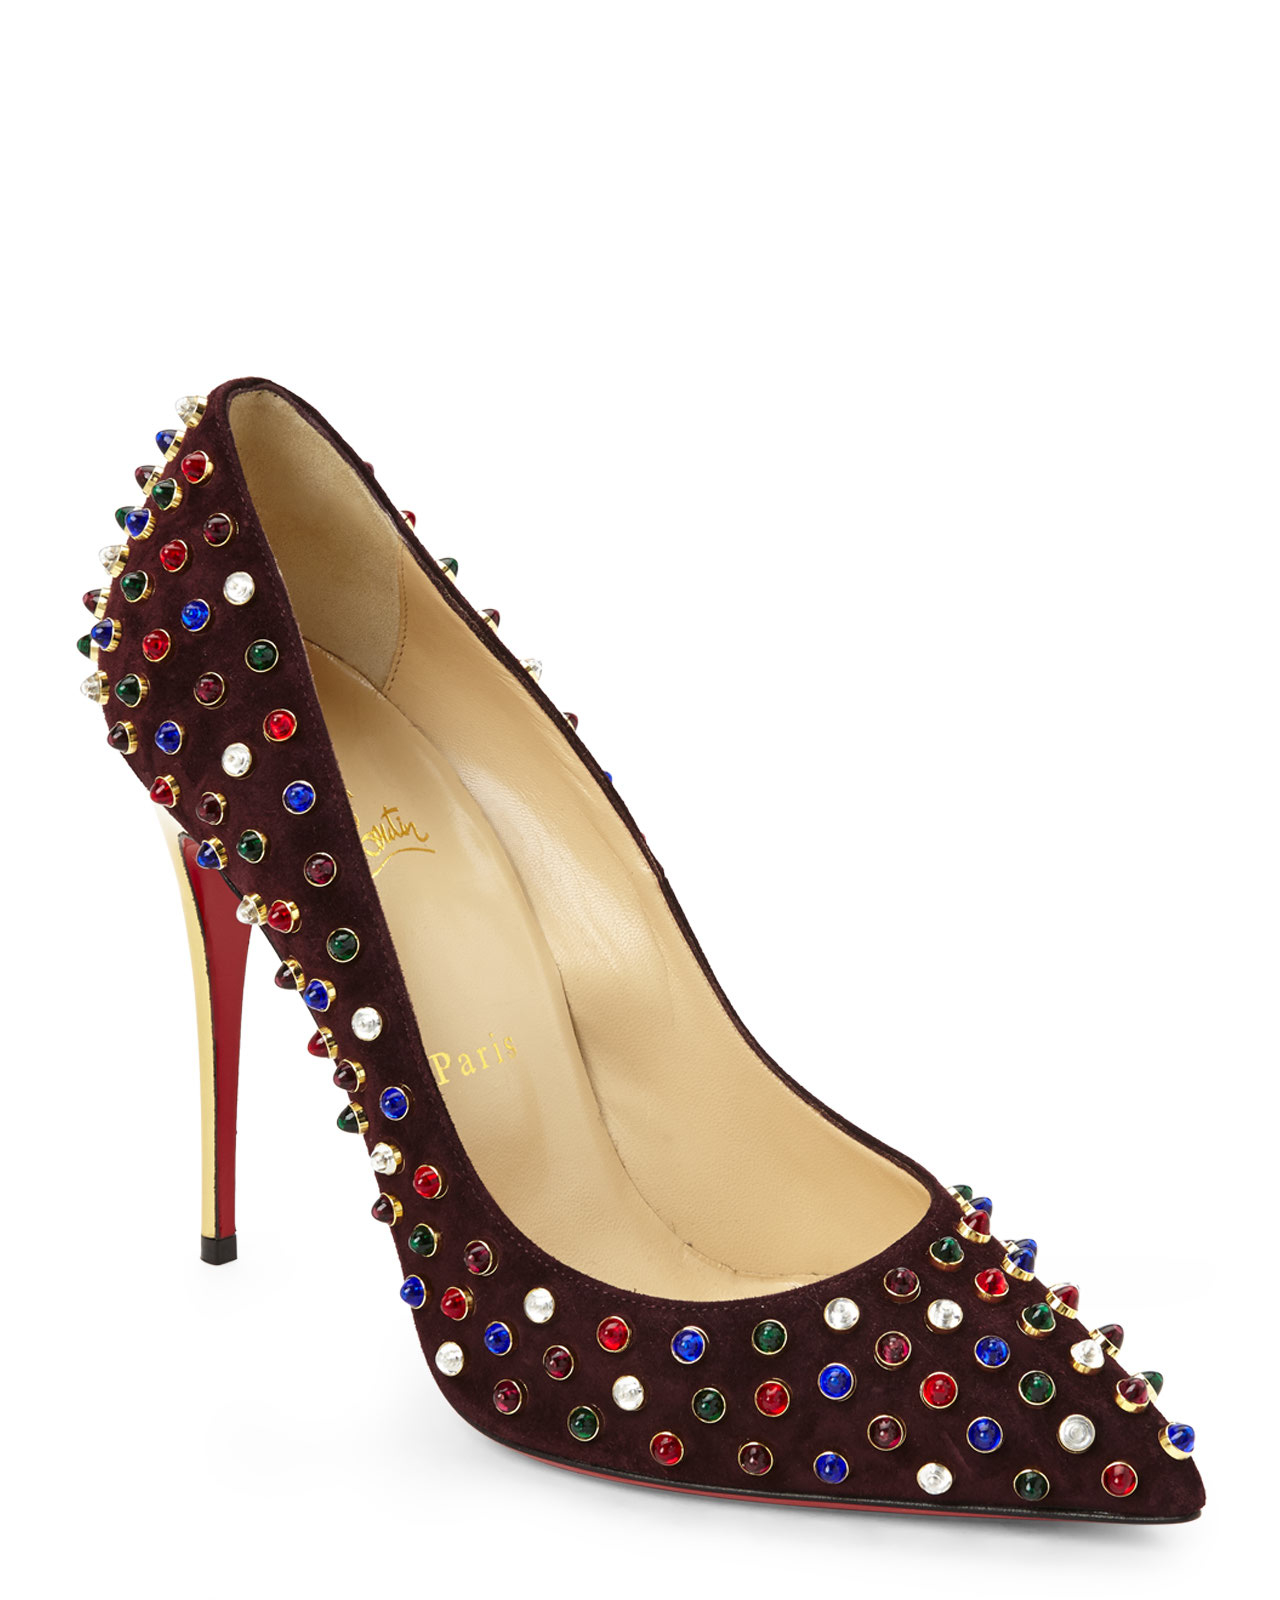 louis louboutin shoes - christian louboutin follies cabo spiked pumps, louboutin men spikes